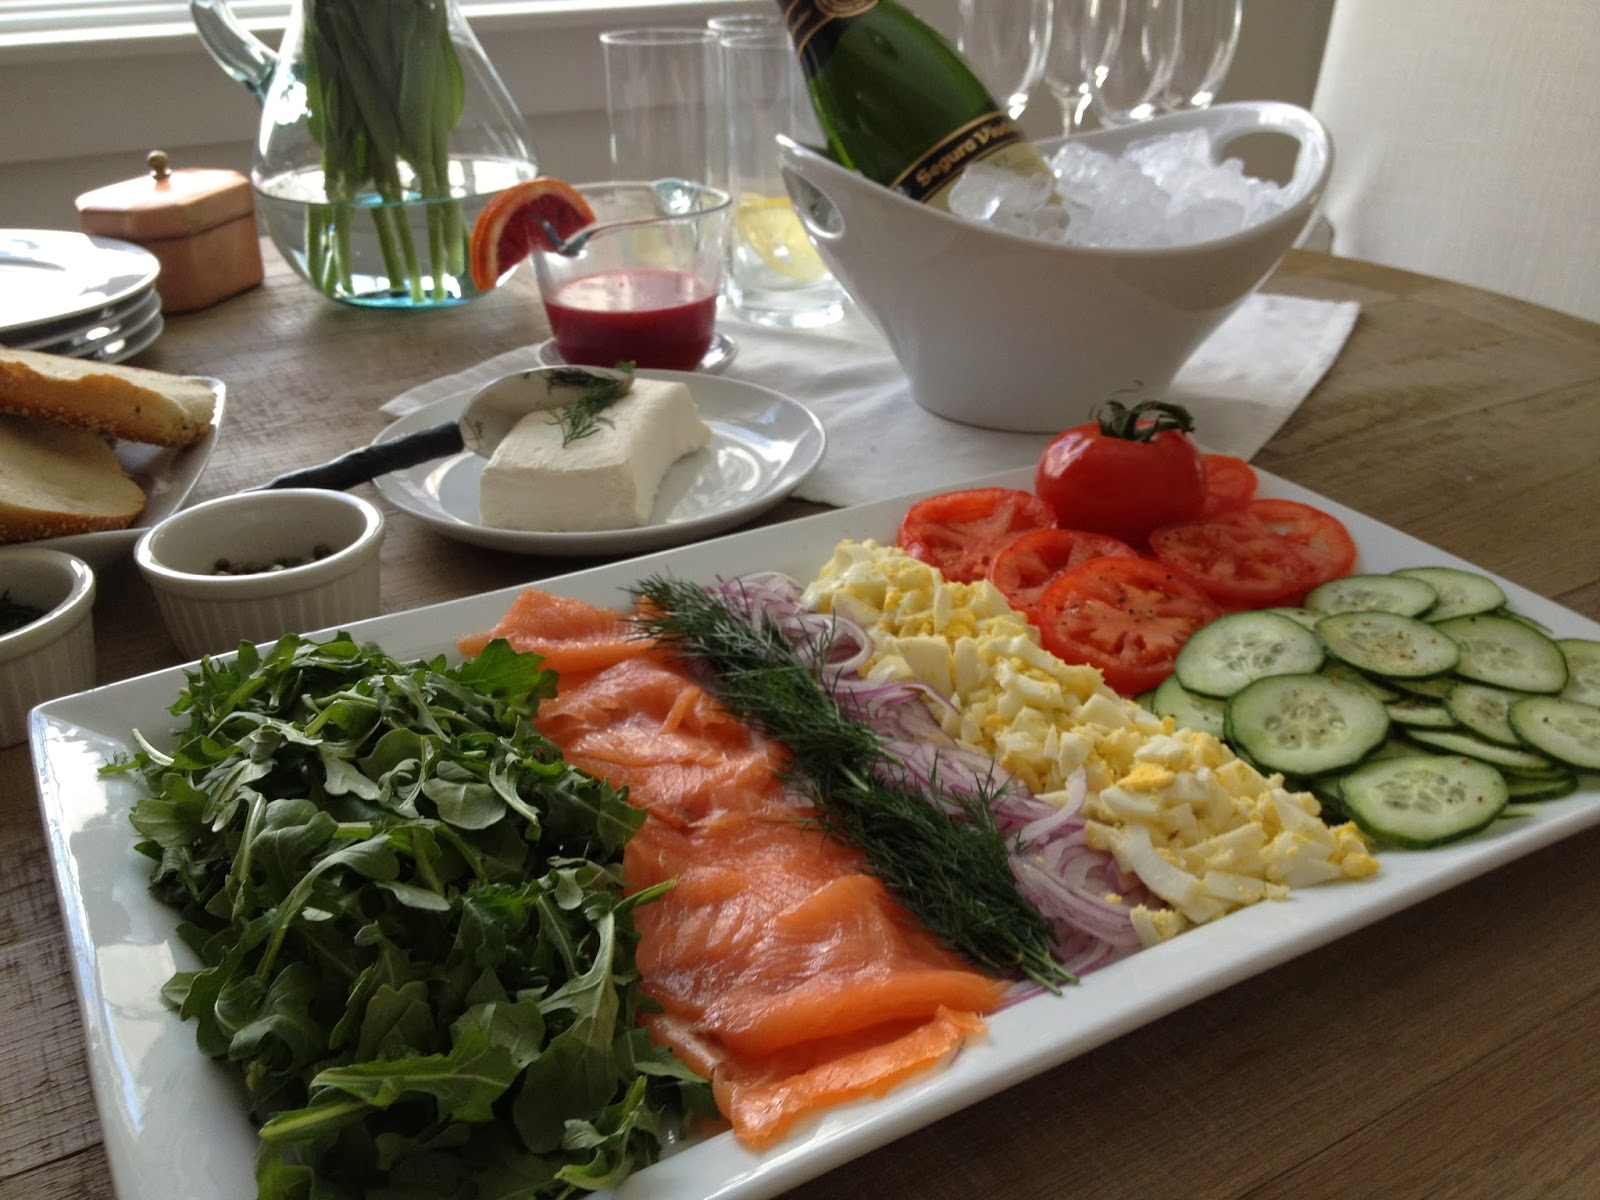 ideas for serving smoked salmon home cooking chowhound. Black Bedroom Furniture Sets. Home Design Ideas